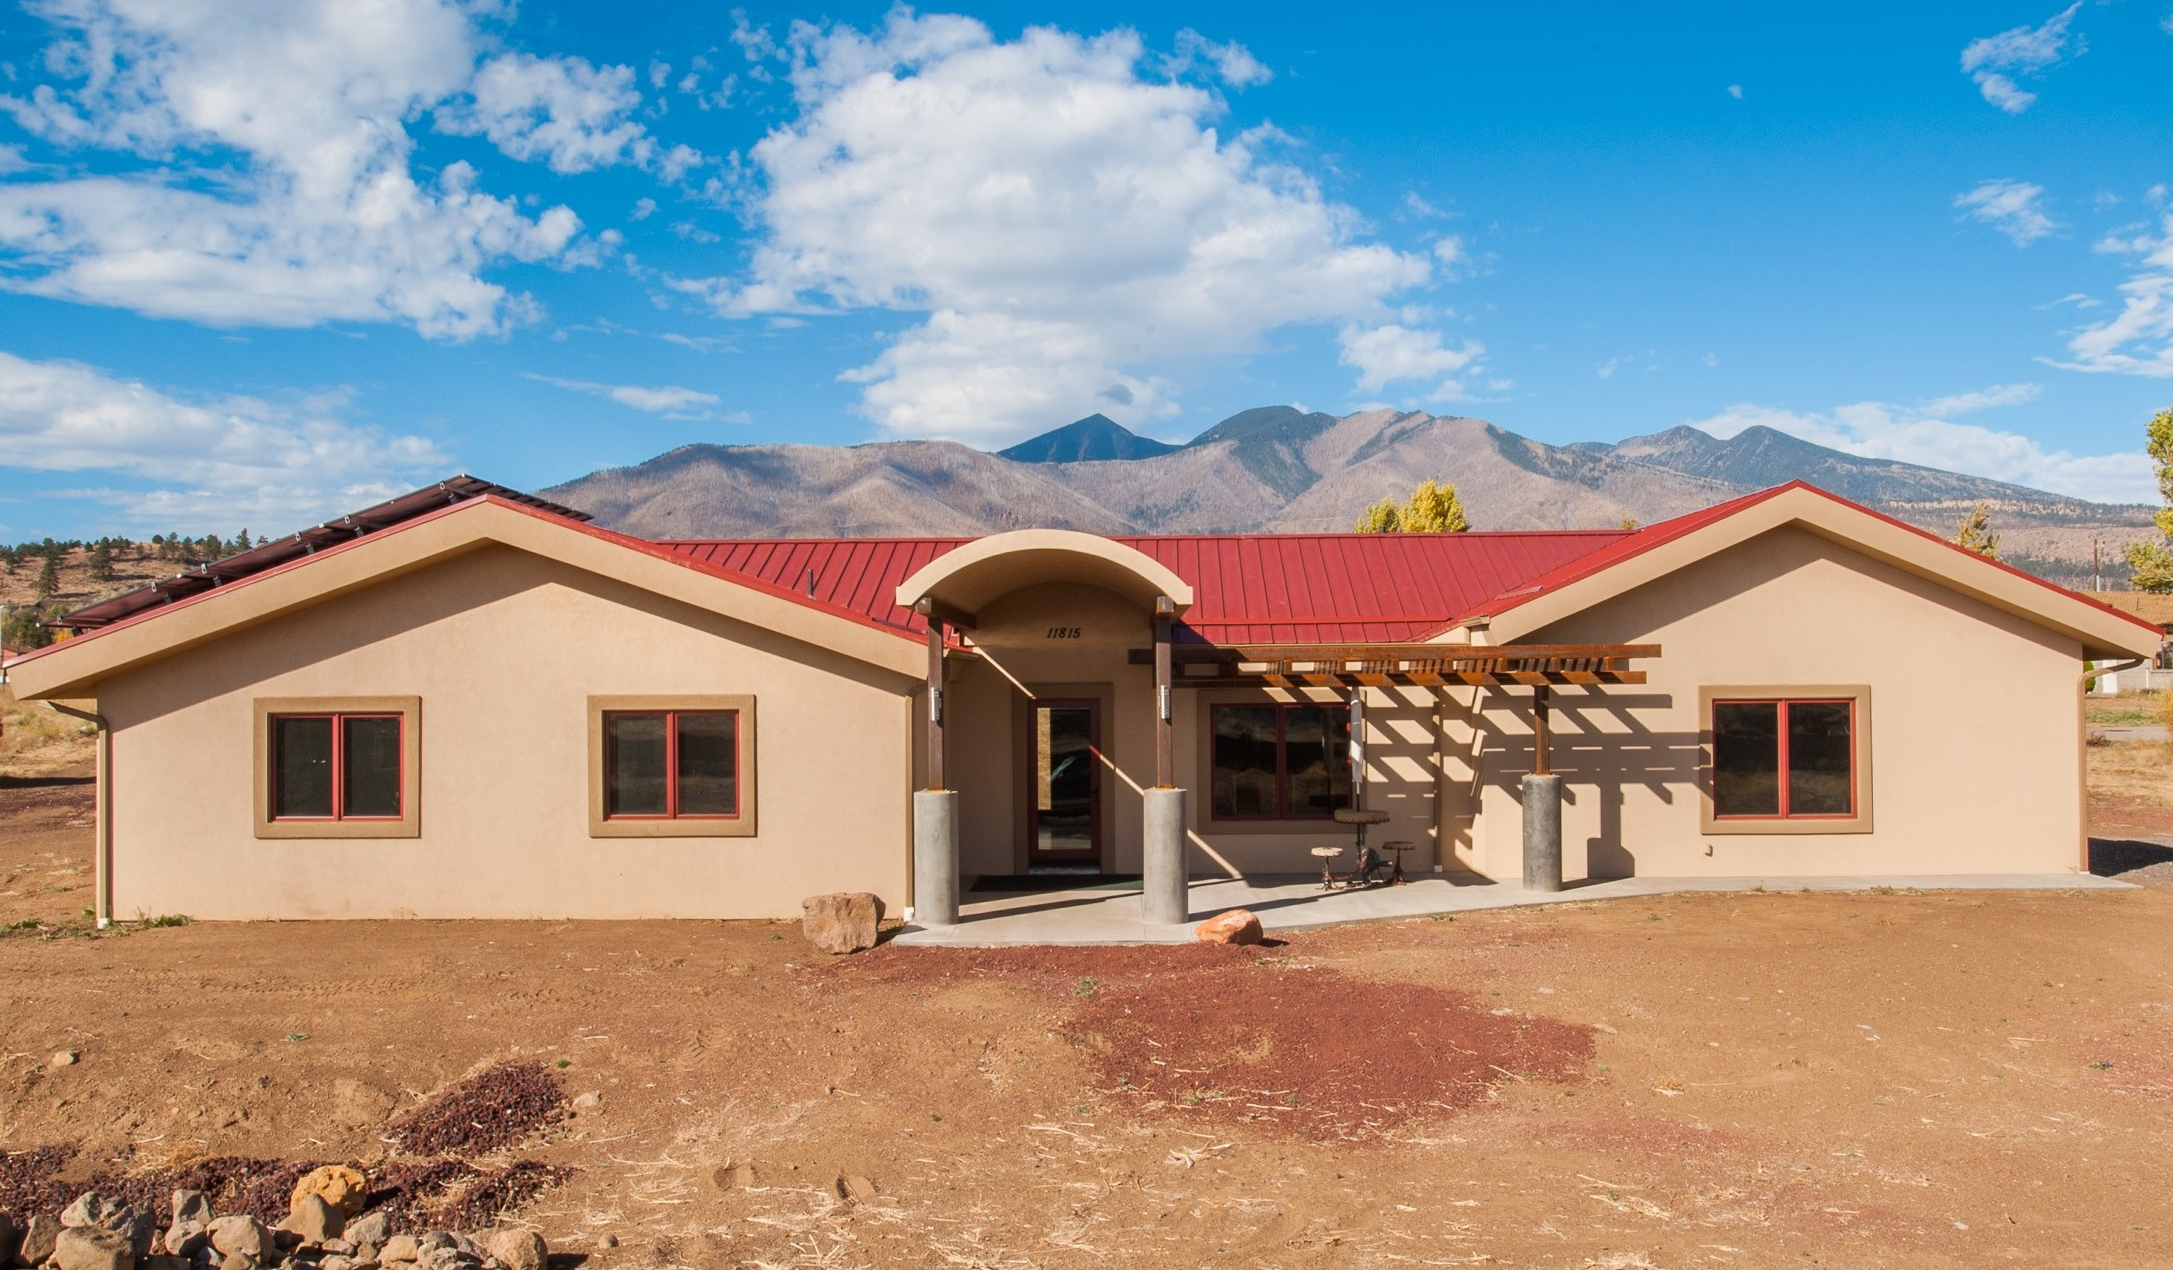 The outside of a completed custom residential home near Flagstaff, Arizona.